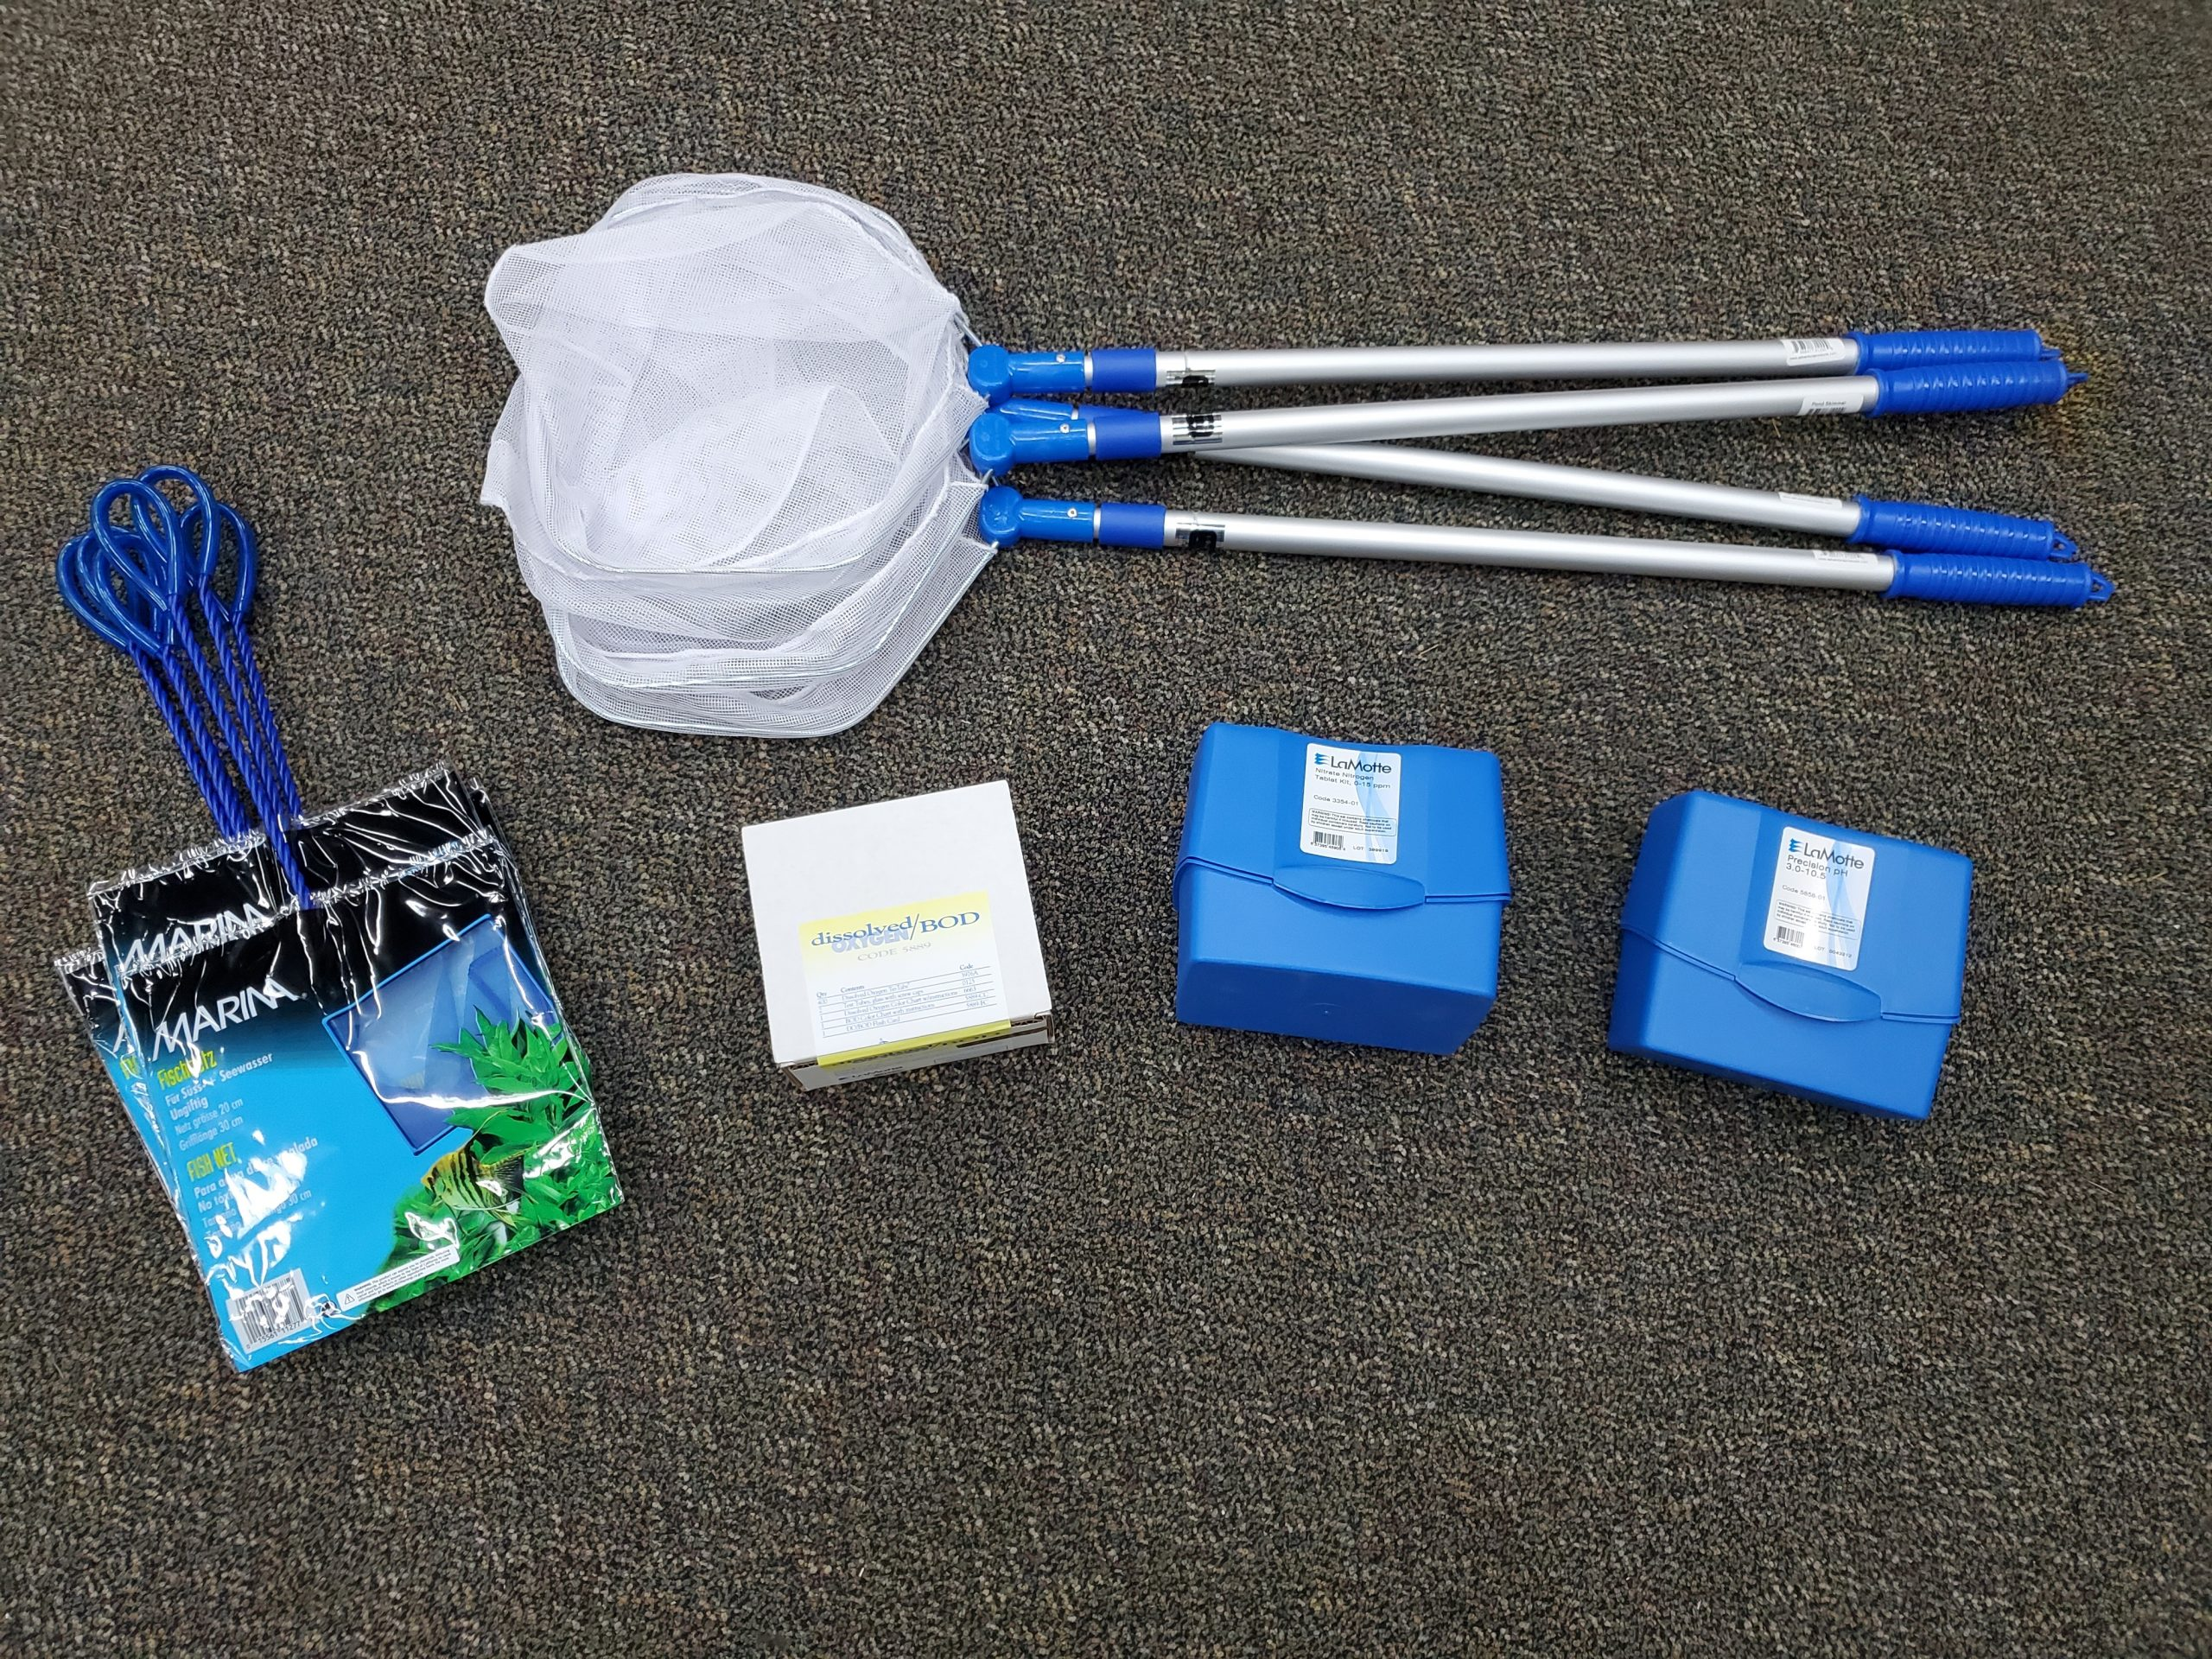 Nets and test kits